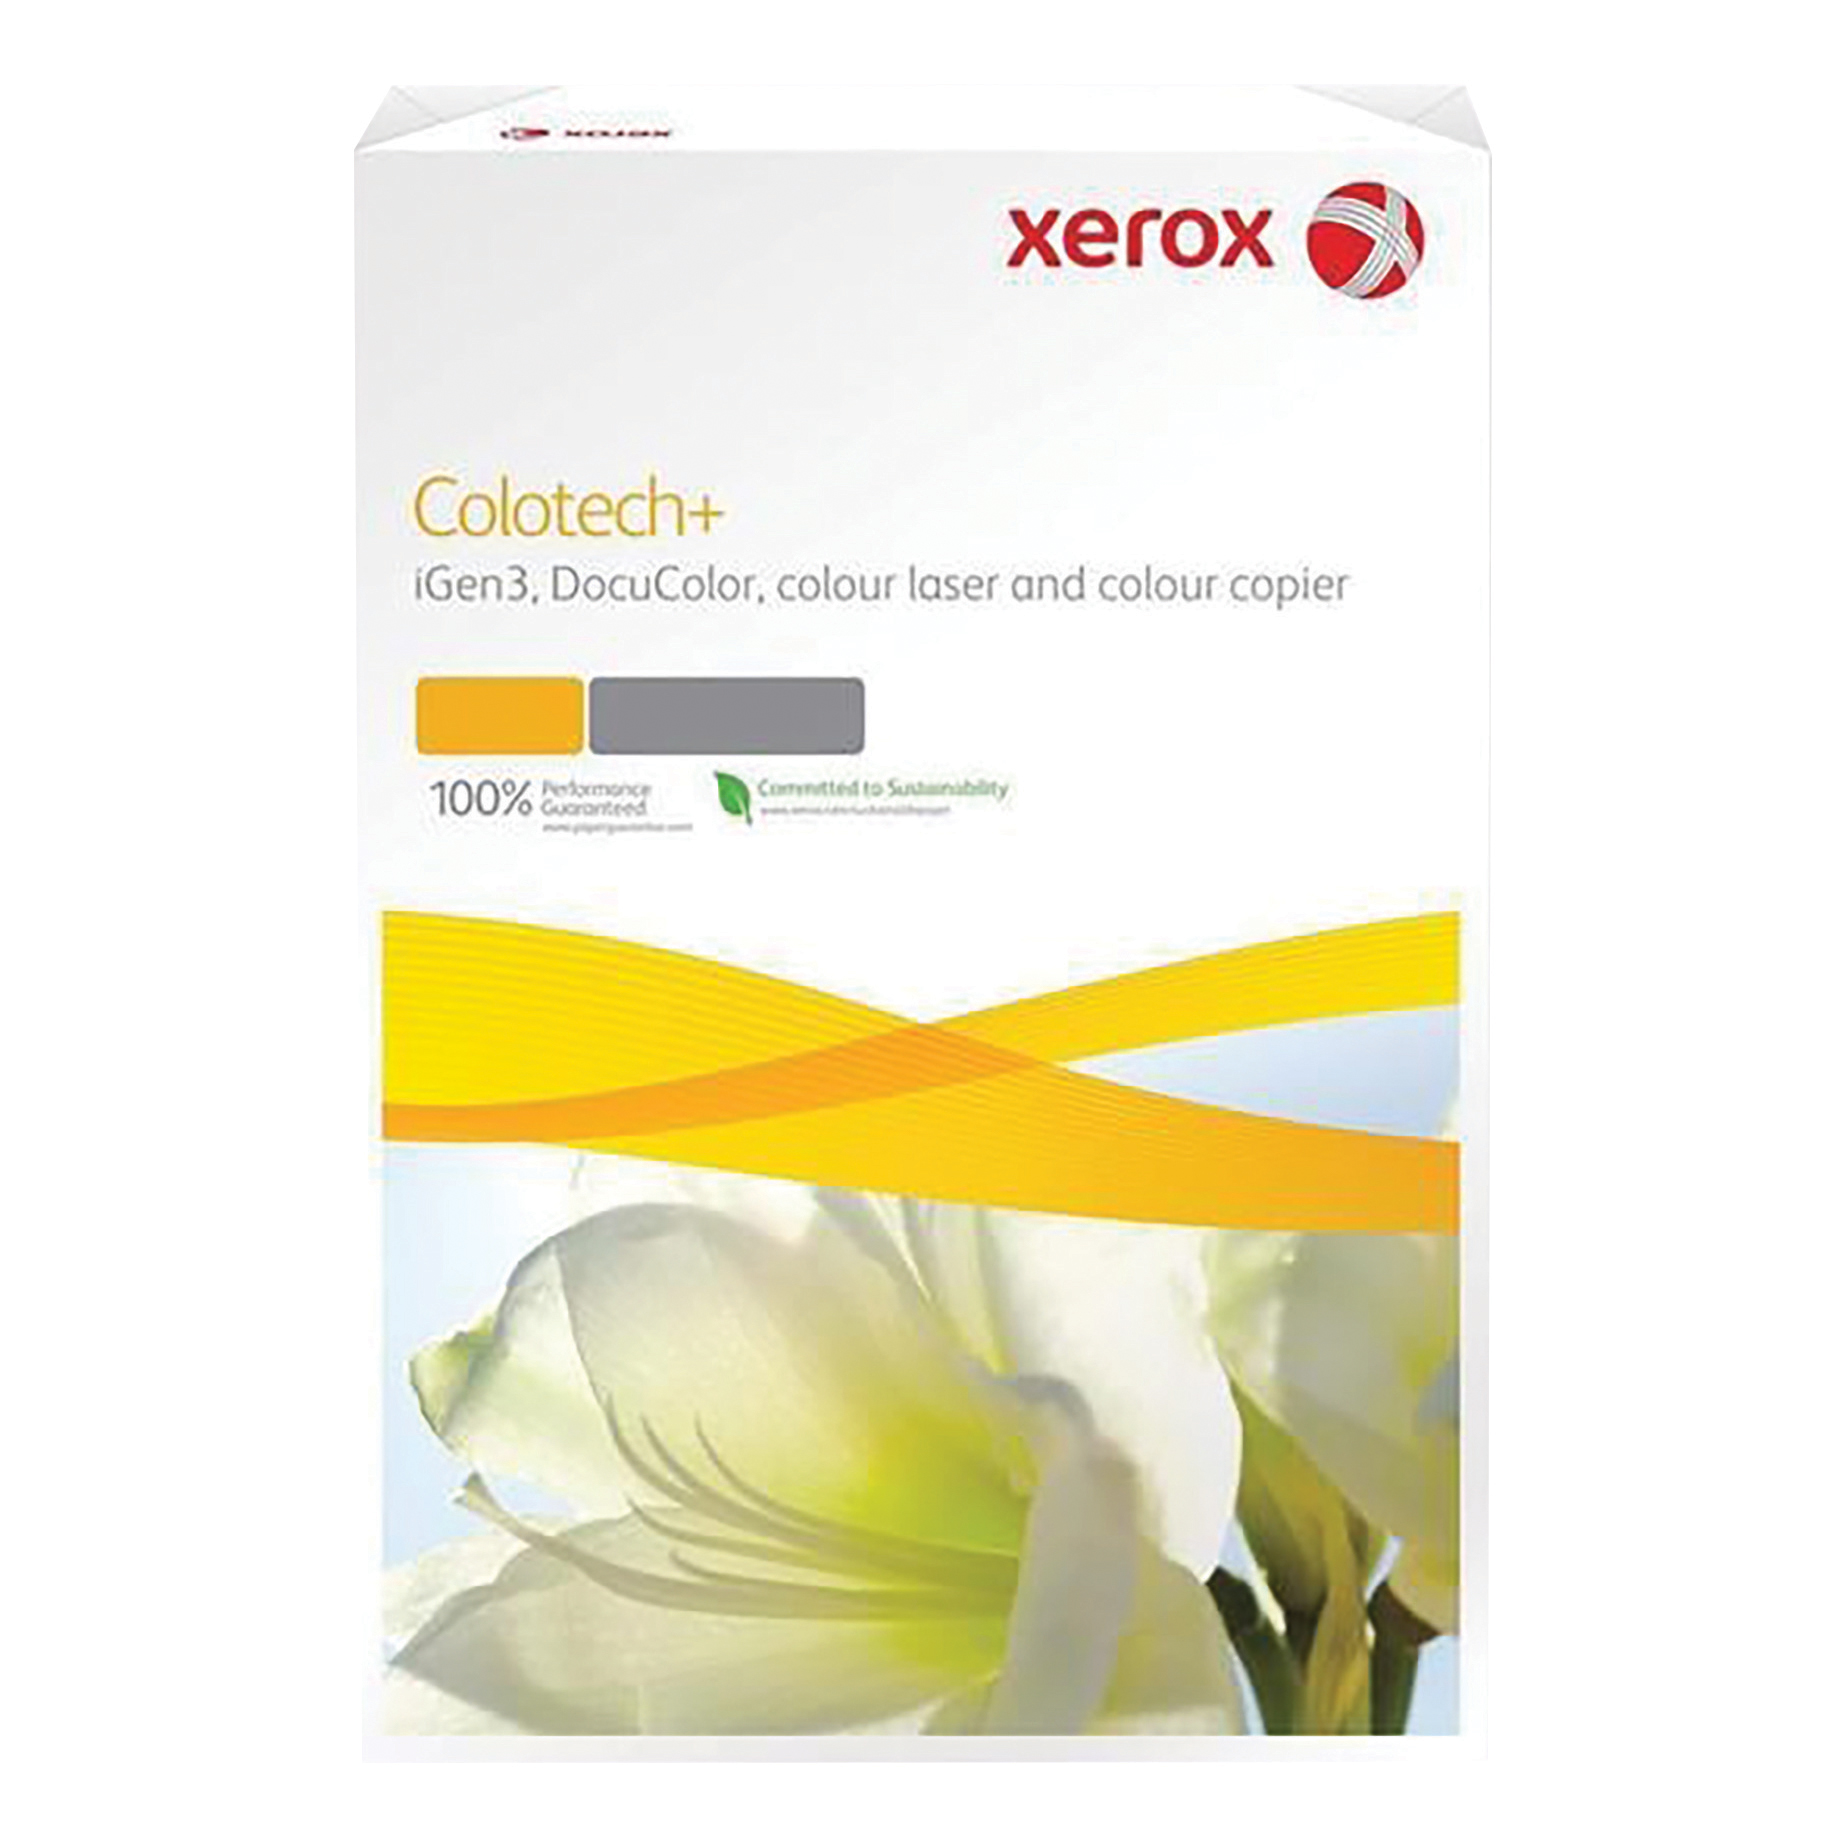 A3 Xerox FSC Colotech+ Digital Colour Paper Prem Ream-Wrapped ColorLok 100gsm A3 White Ref 64462500 Sheets